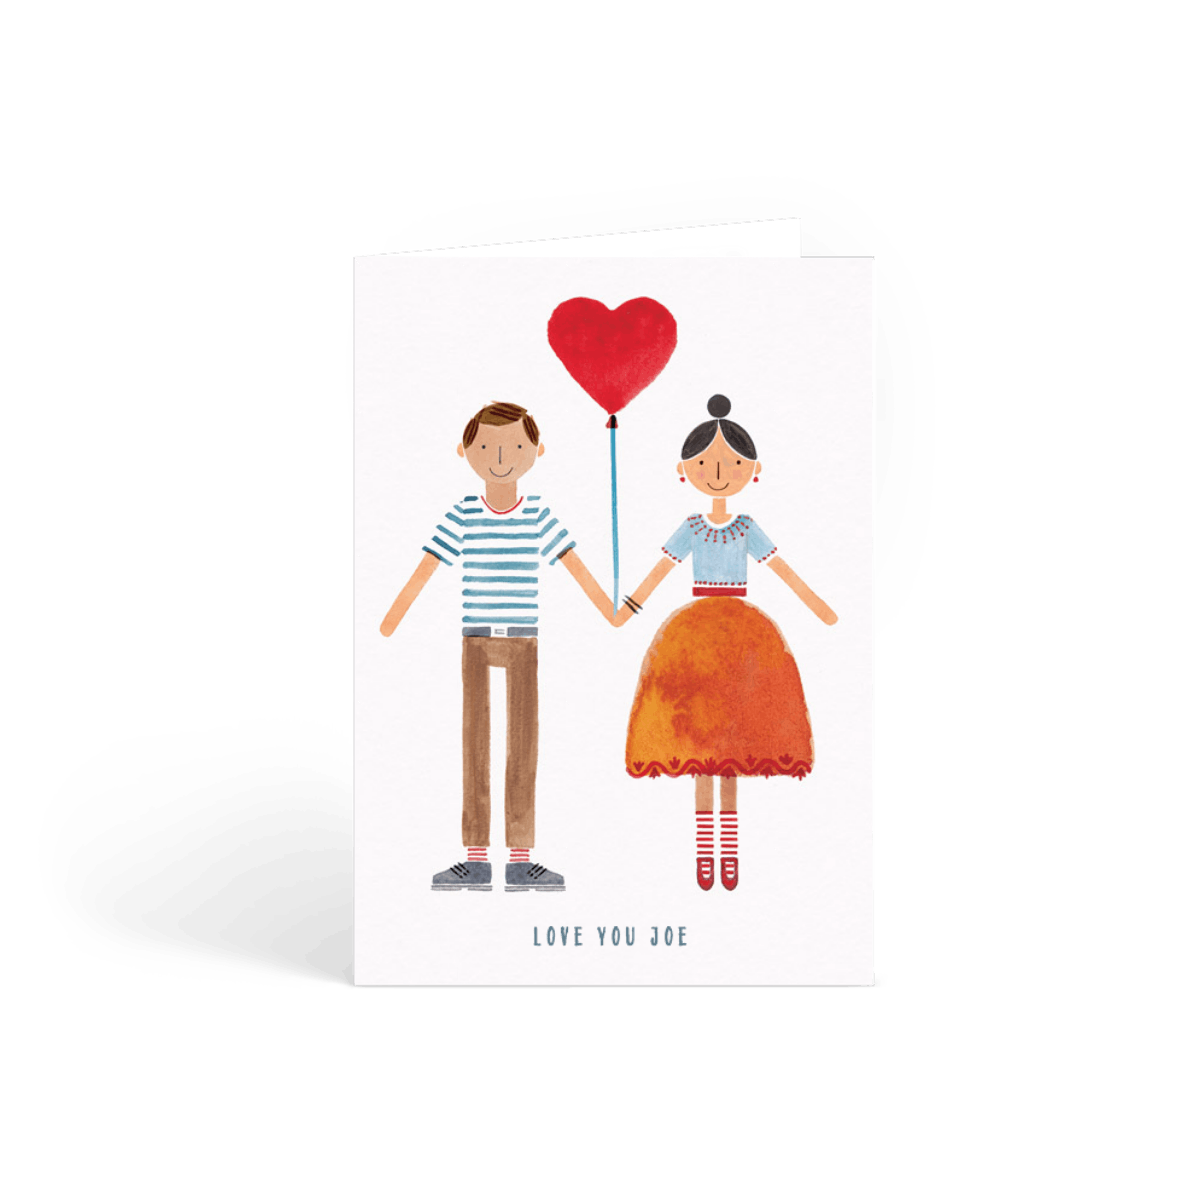 Https%3a%2f%2fwww.papier.com%2fproduct image%2f3842%2f2%2fcouple with heart balloon 1024 front 1453911011.png?ixlib=rb 1.1